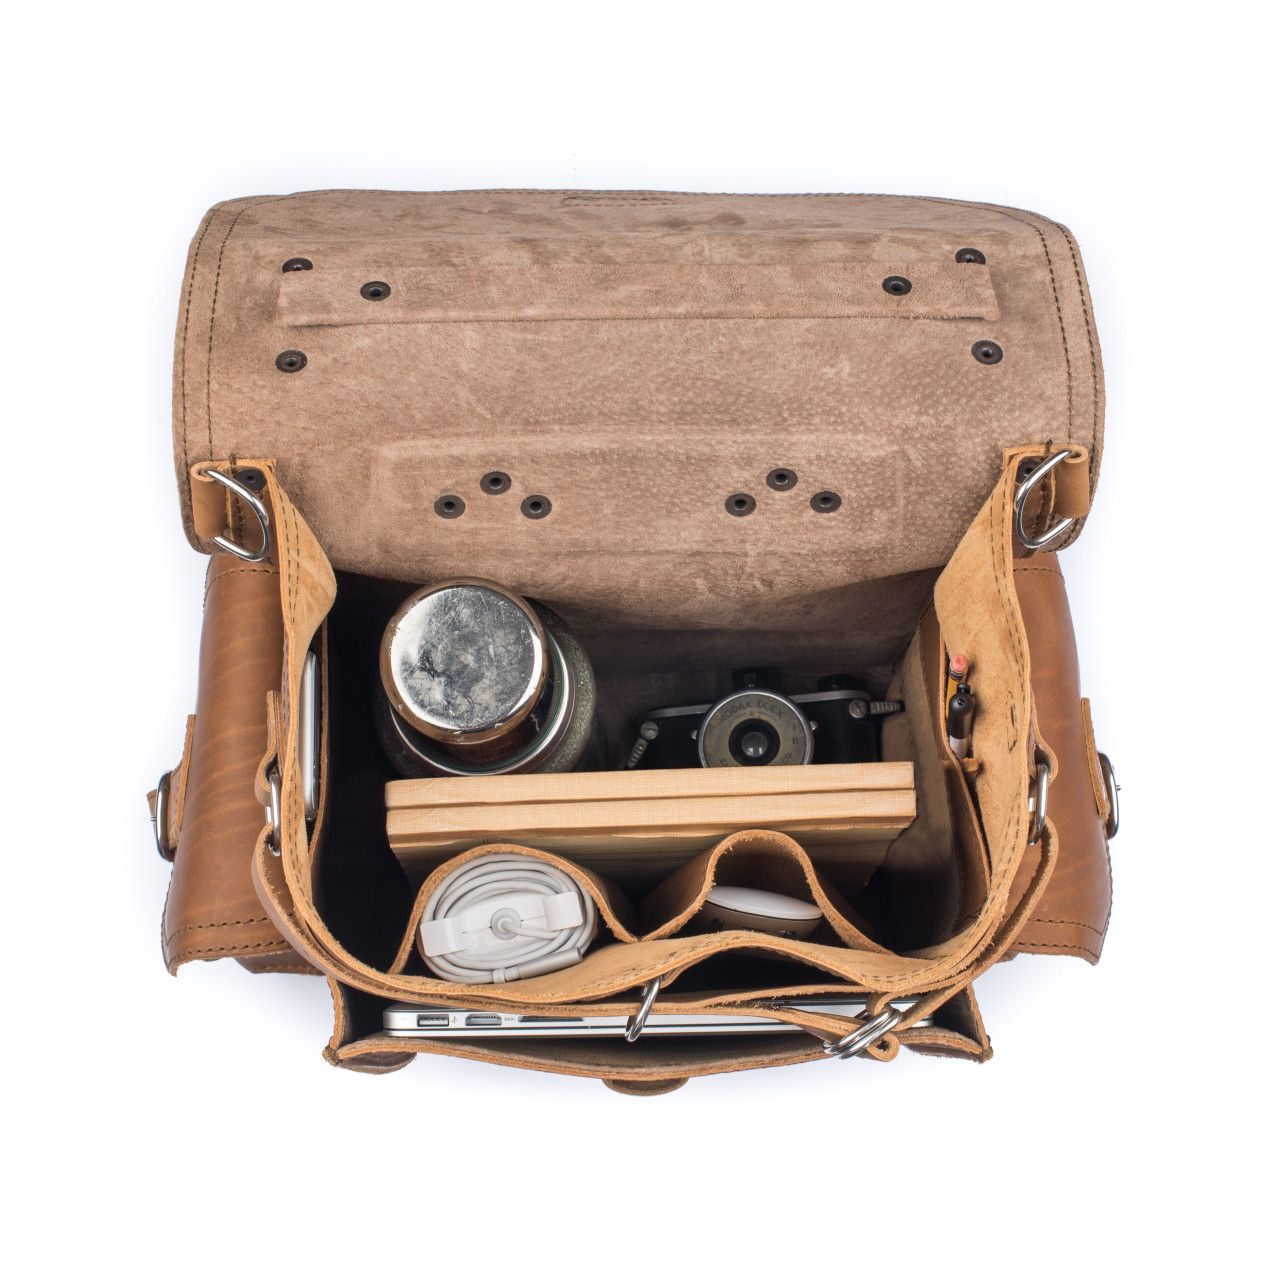 An old camera and a macbook with a set to handle the inside of the squared leather backpack in tobacco leather